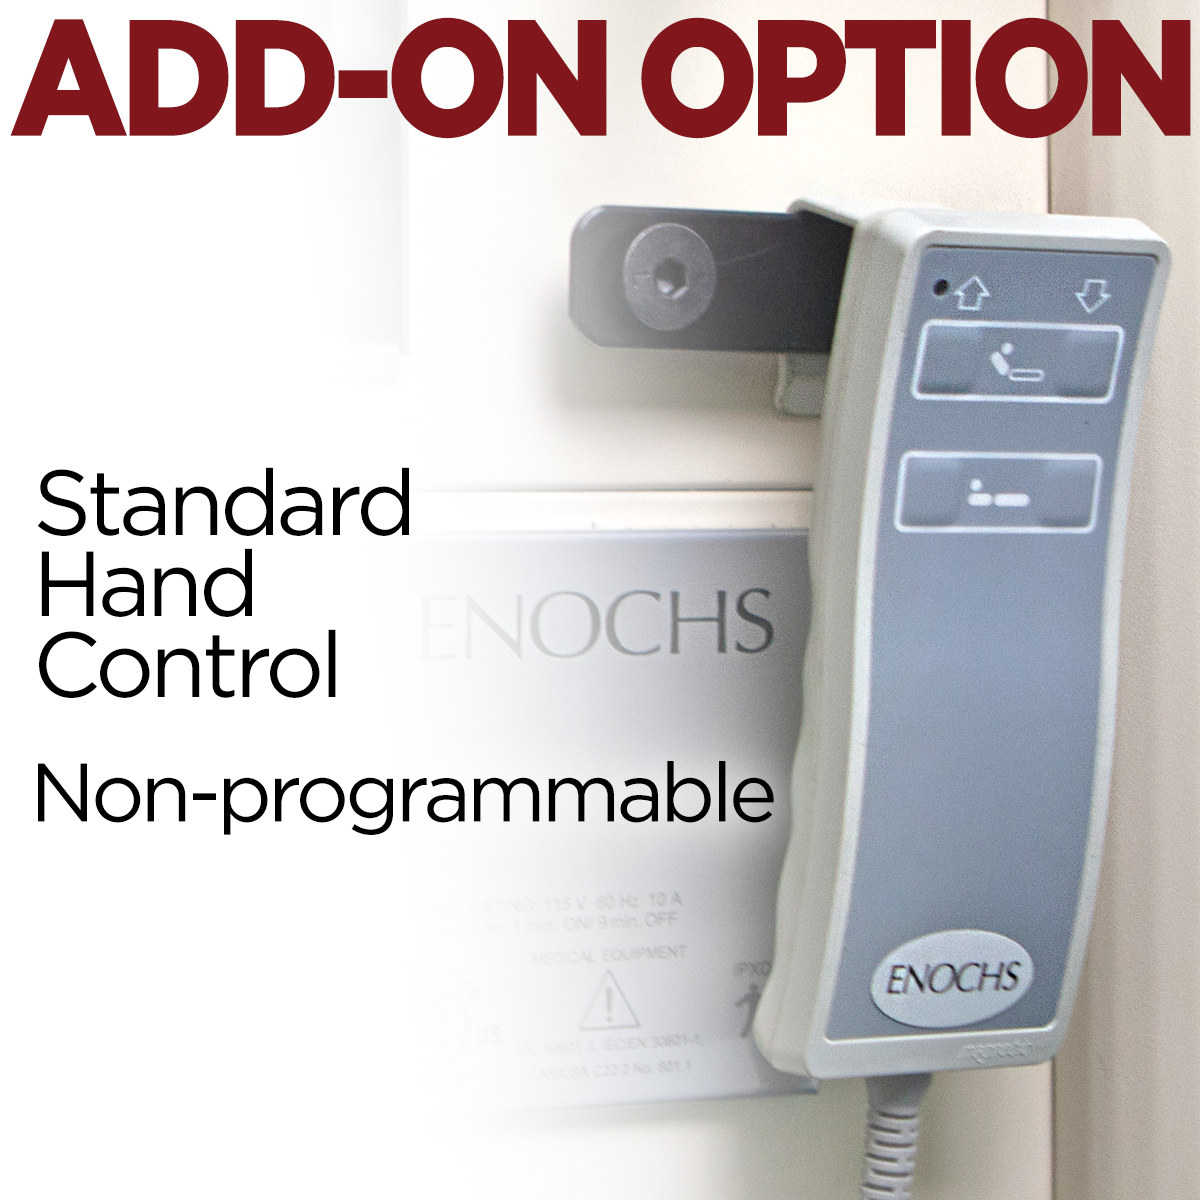 Hand-Control-Standard-add-on.png